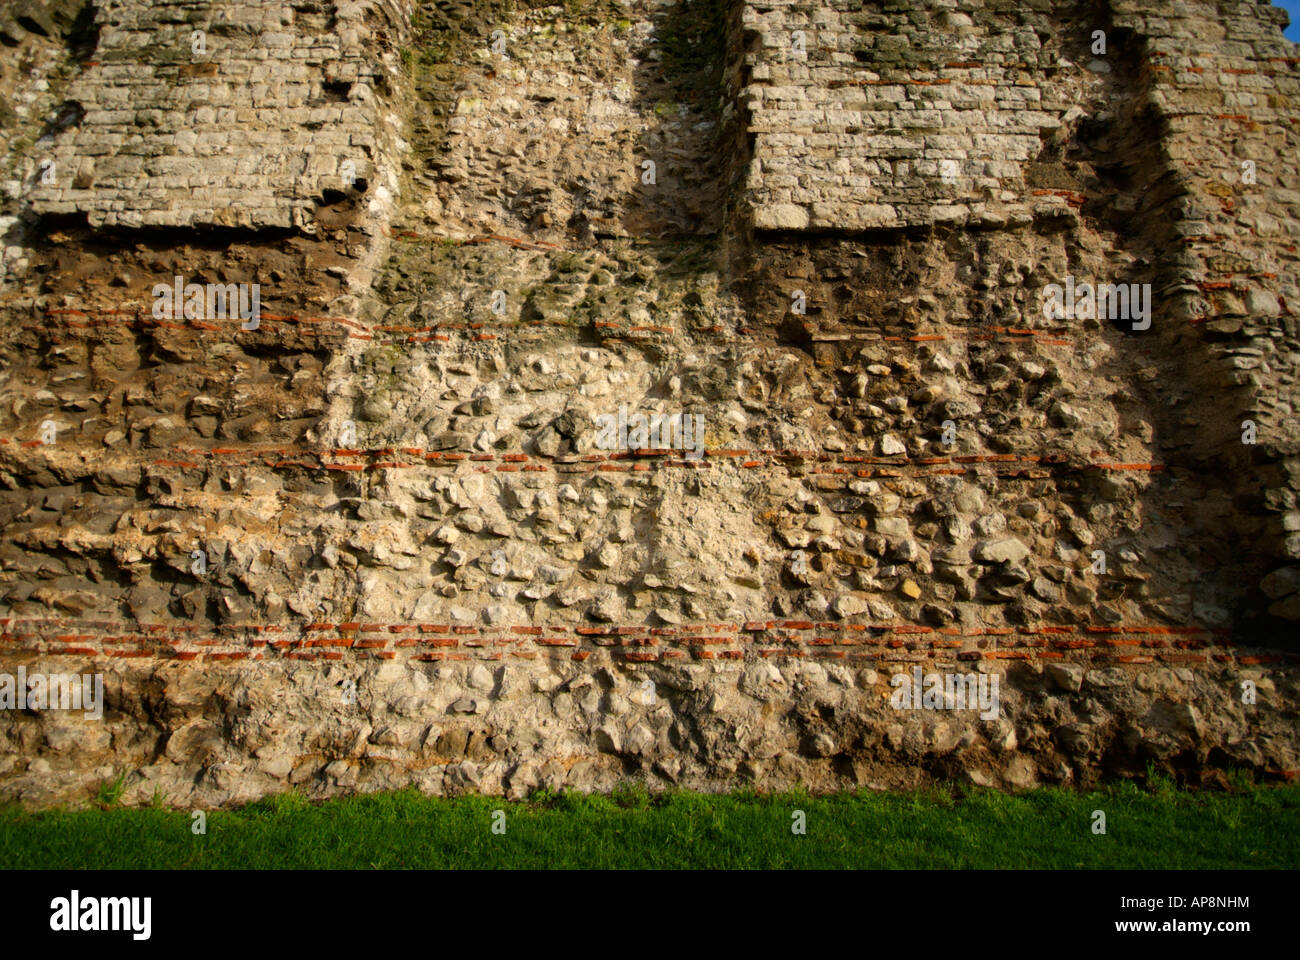 The last remaining section of the Roman wall at Tower Hill, London. - Stock Image